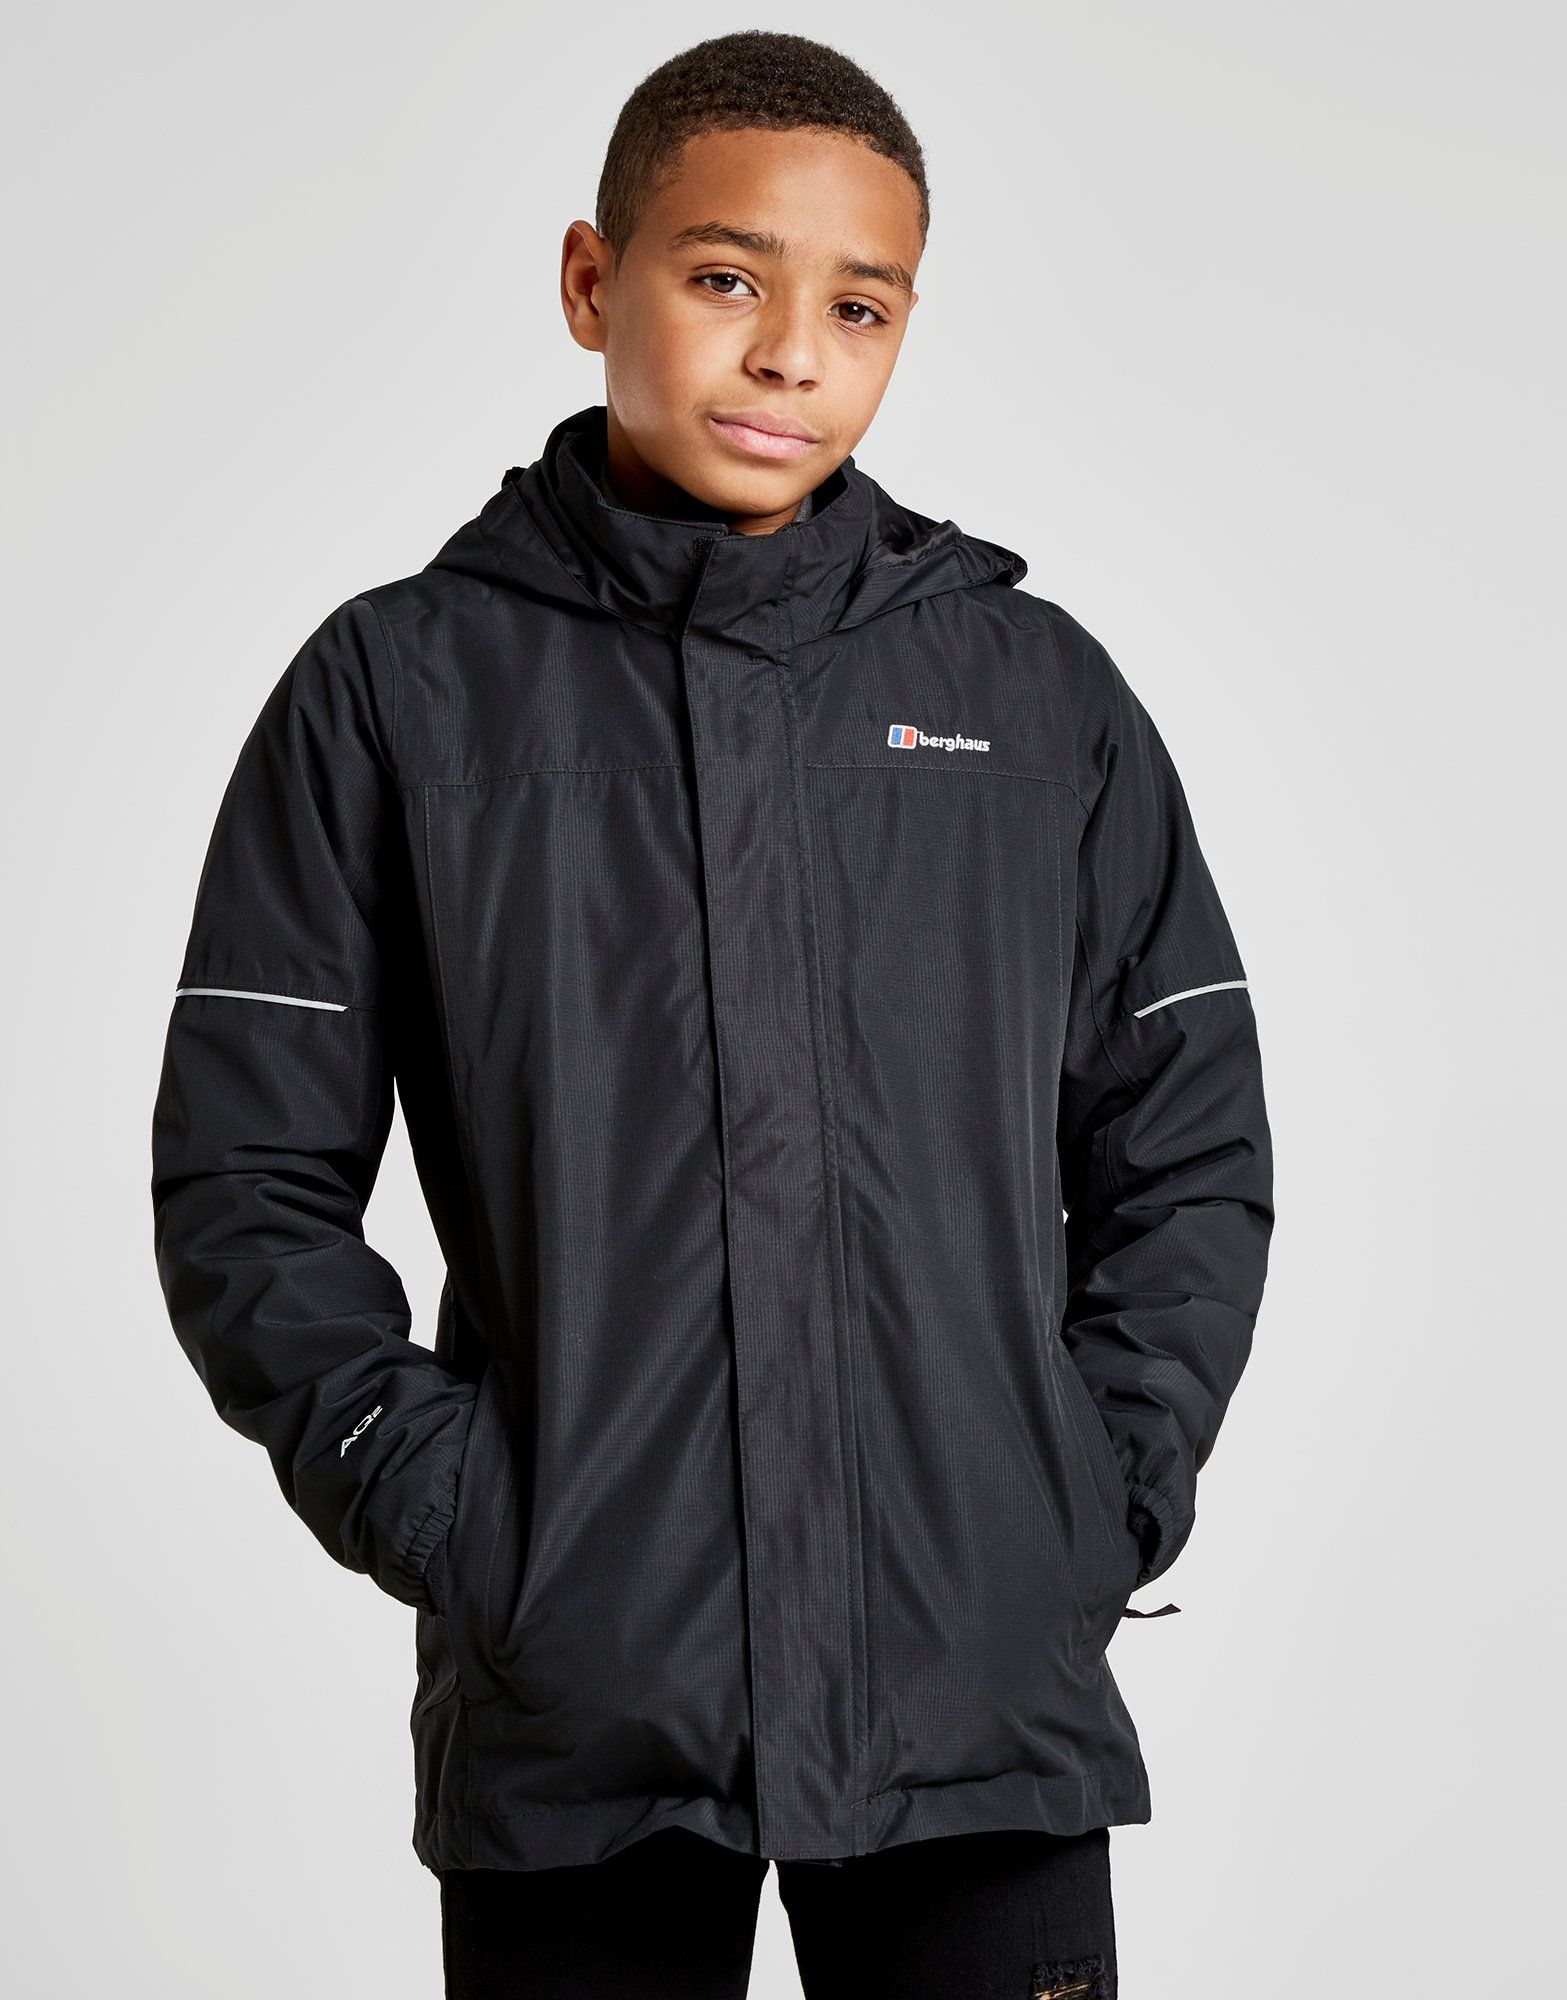 Berghaus Carrock 3-in-1 Jacket Junior